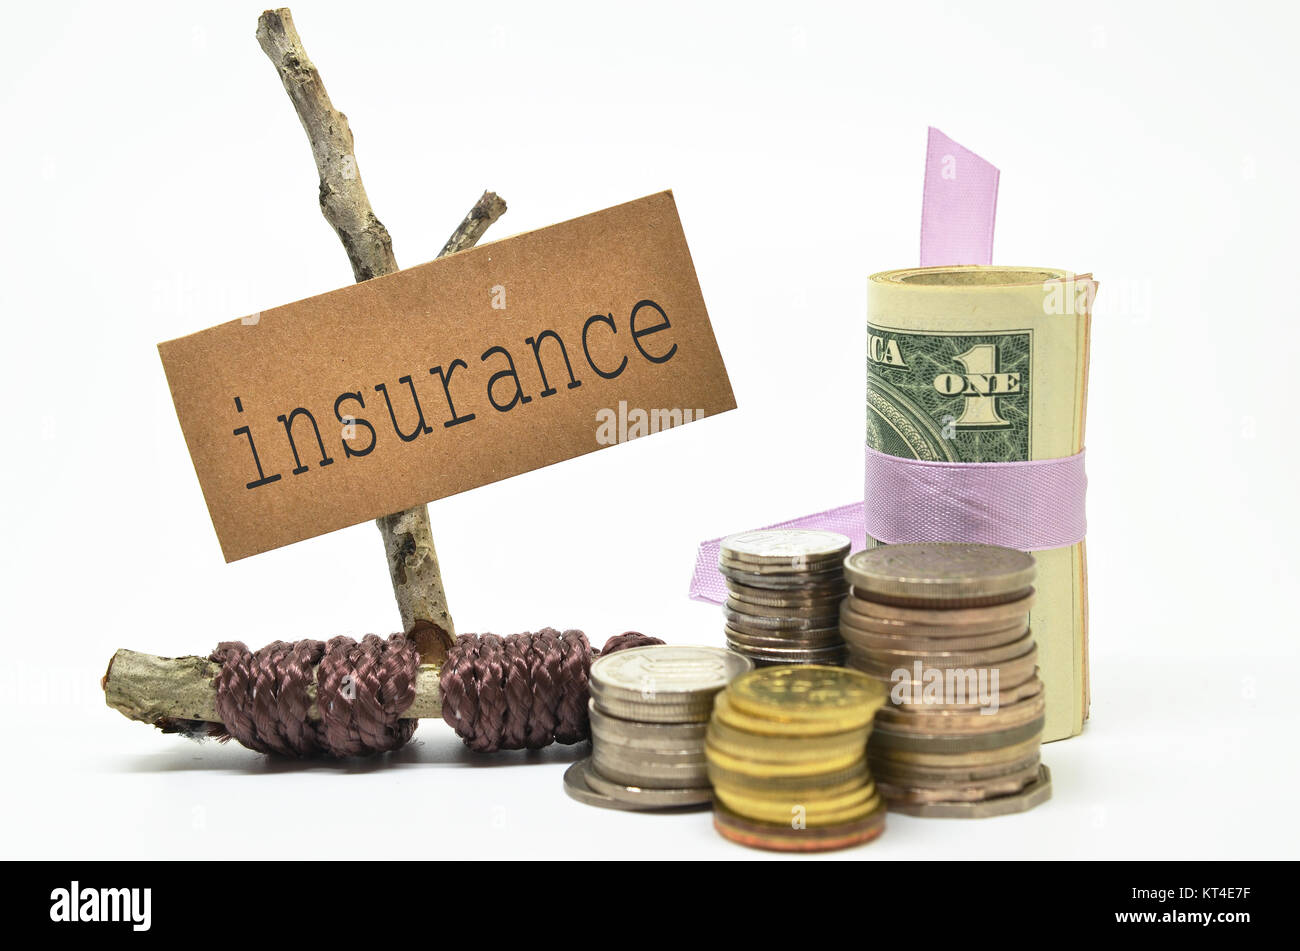 Coins and money with insurance label - Stock Image